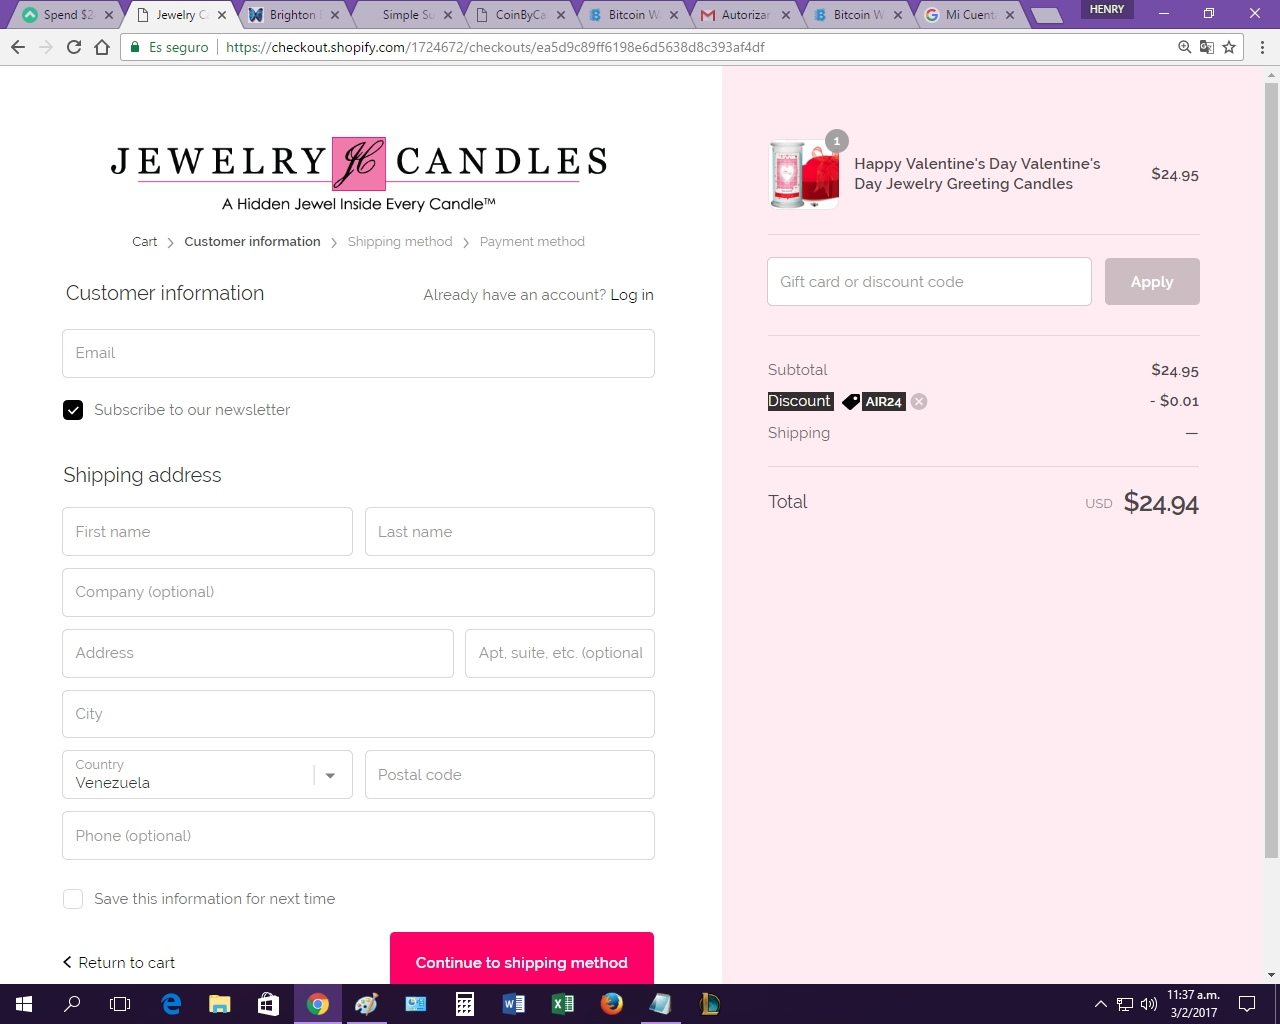 30 jewelry candles coupon code 2017 all feb 2017